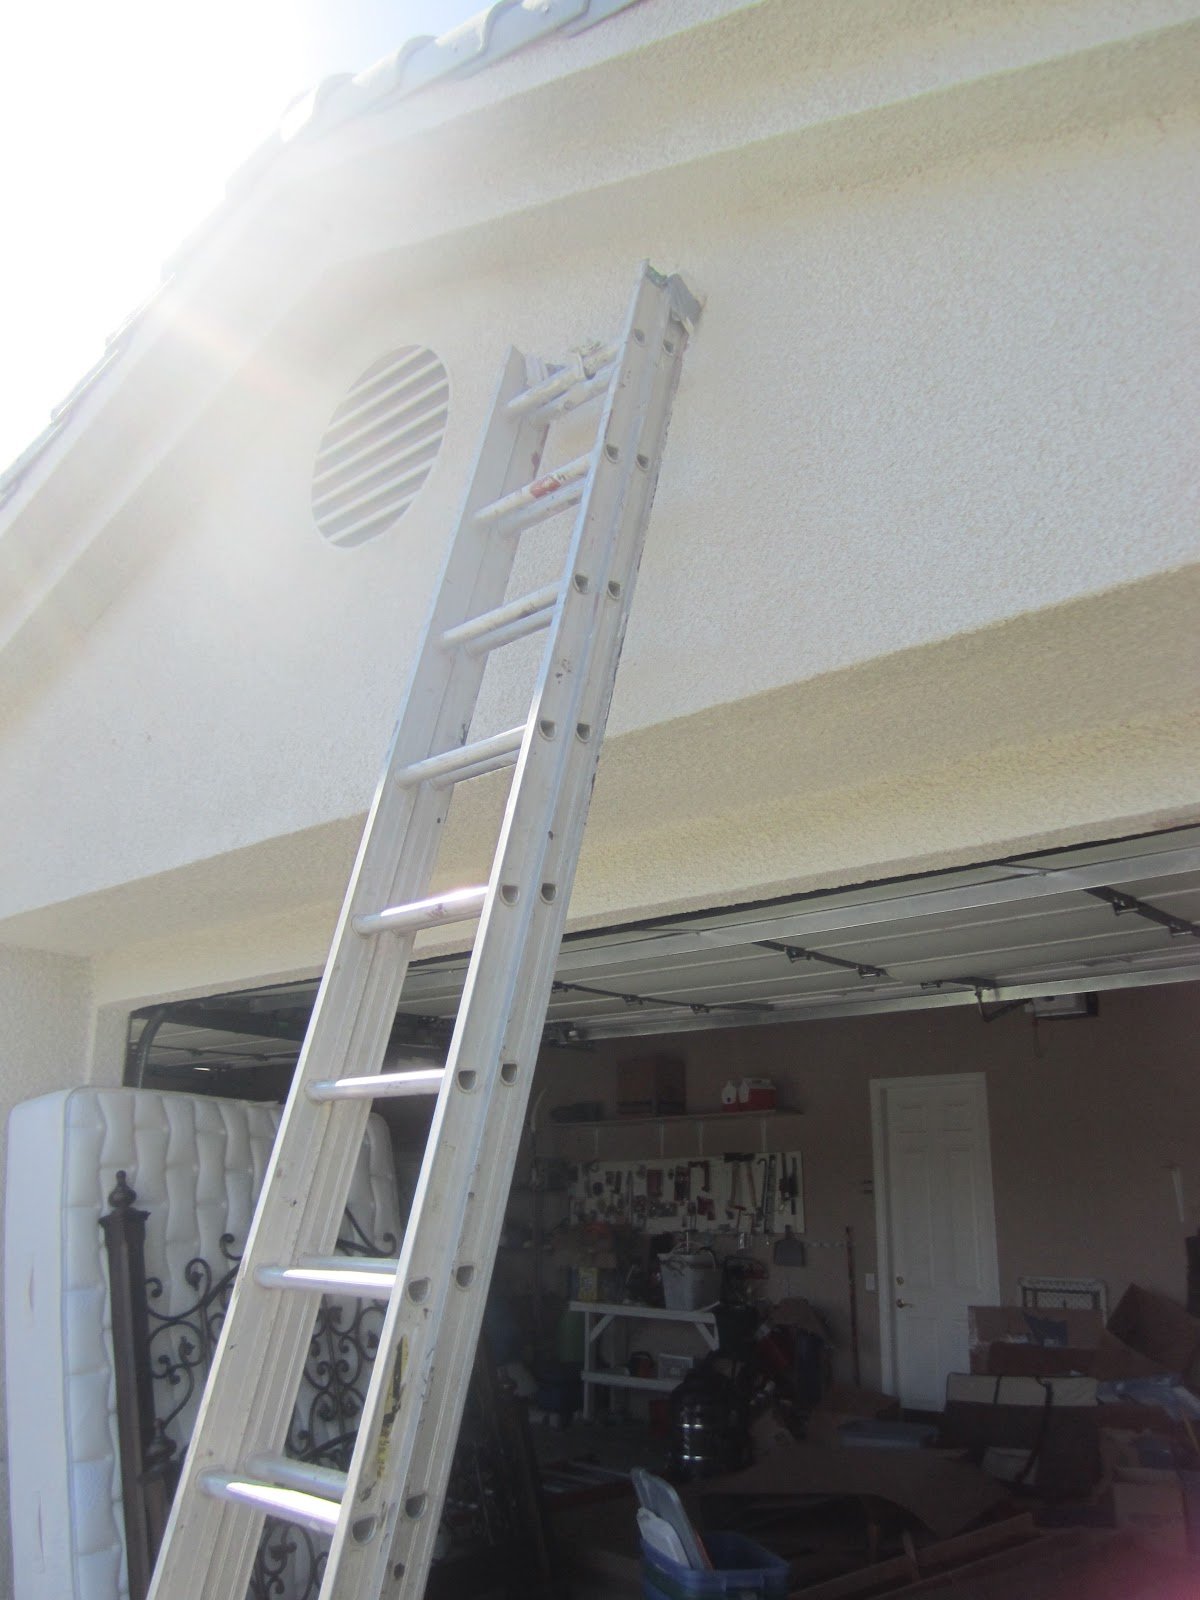 3240px-Extension_ladder_leaning_against_a_garage.JPG